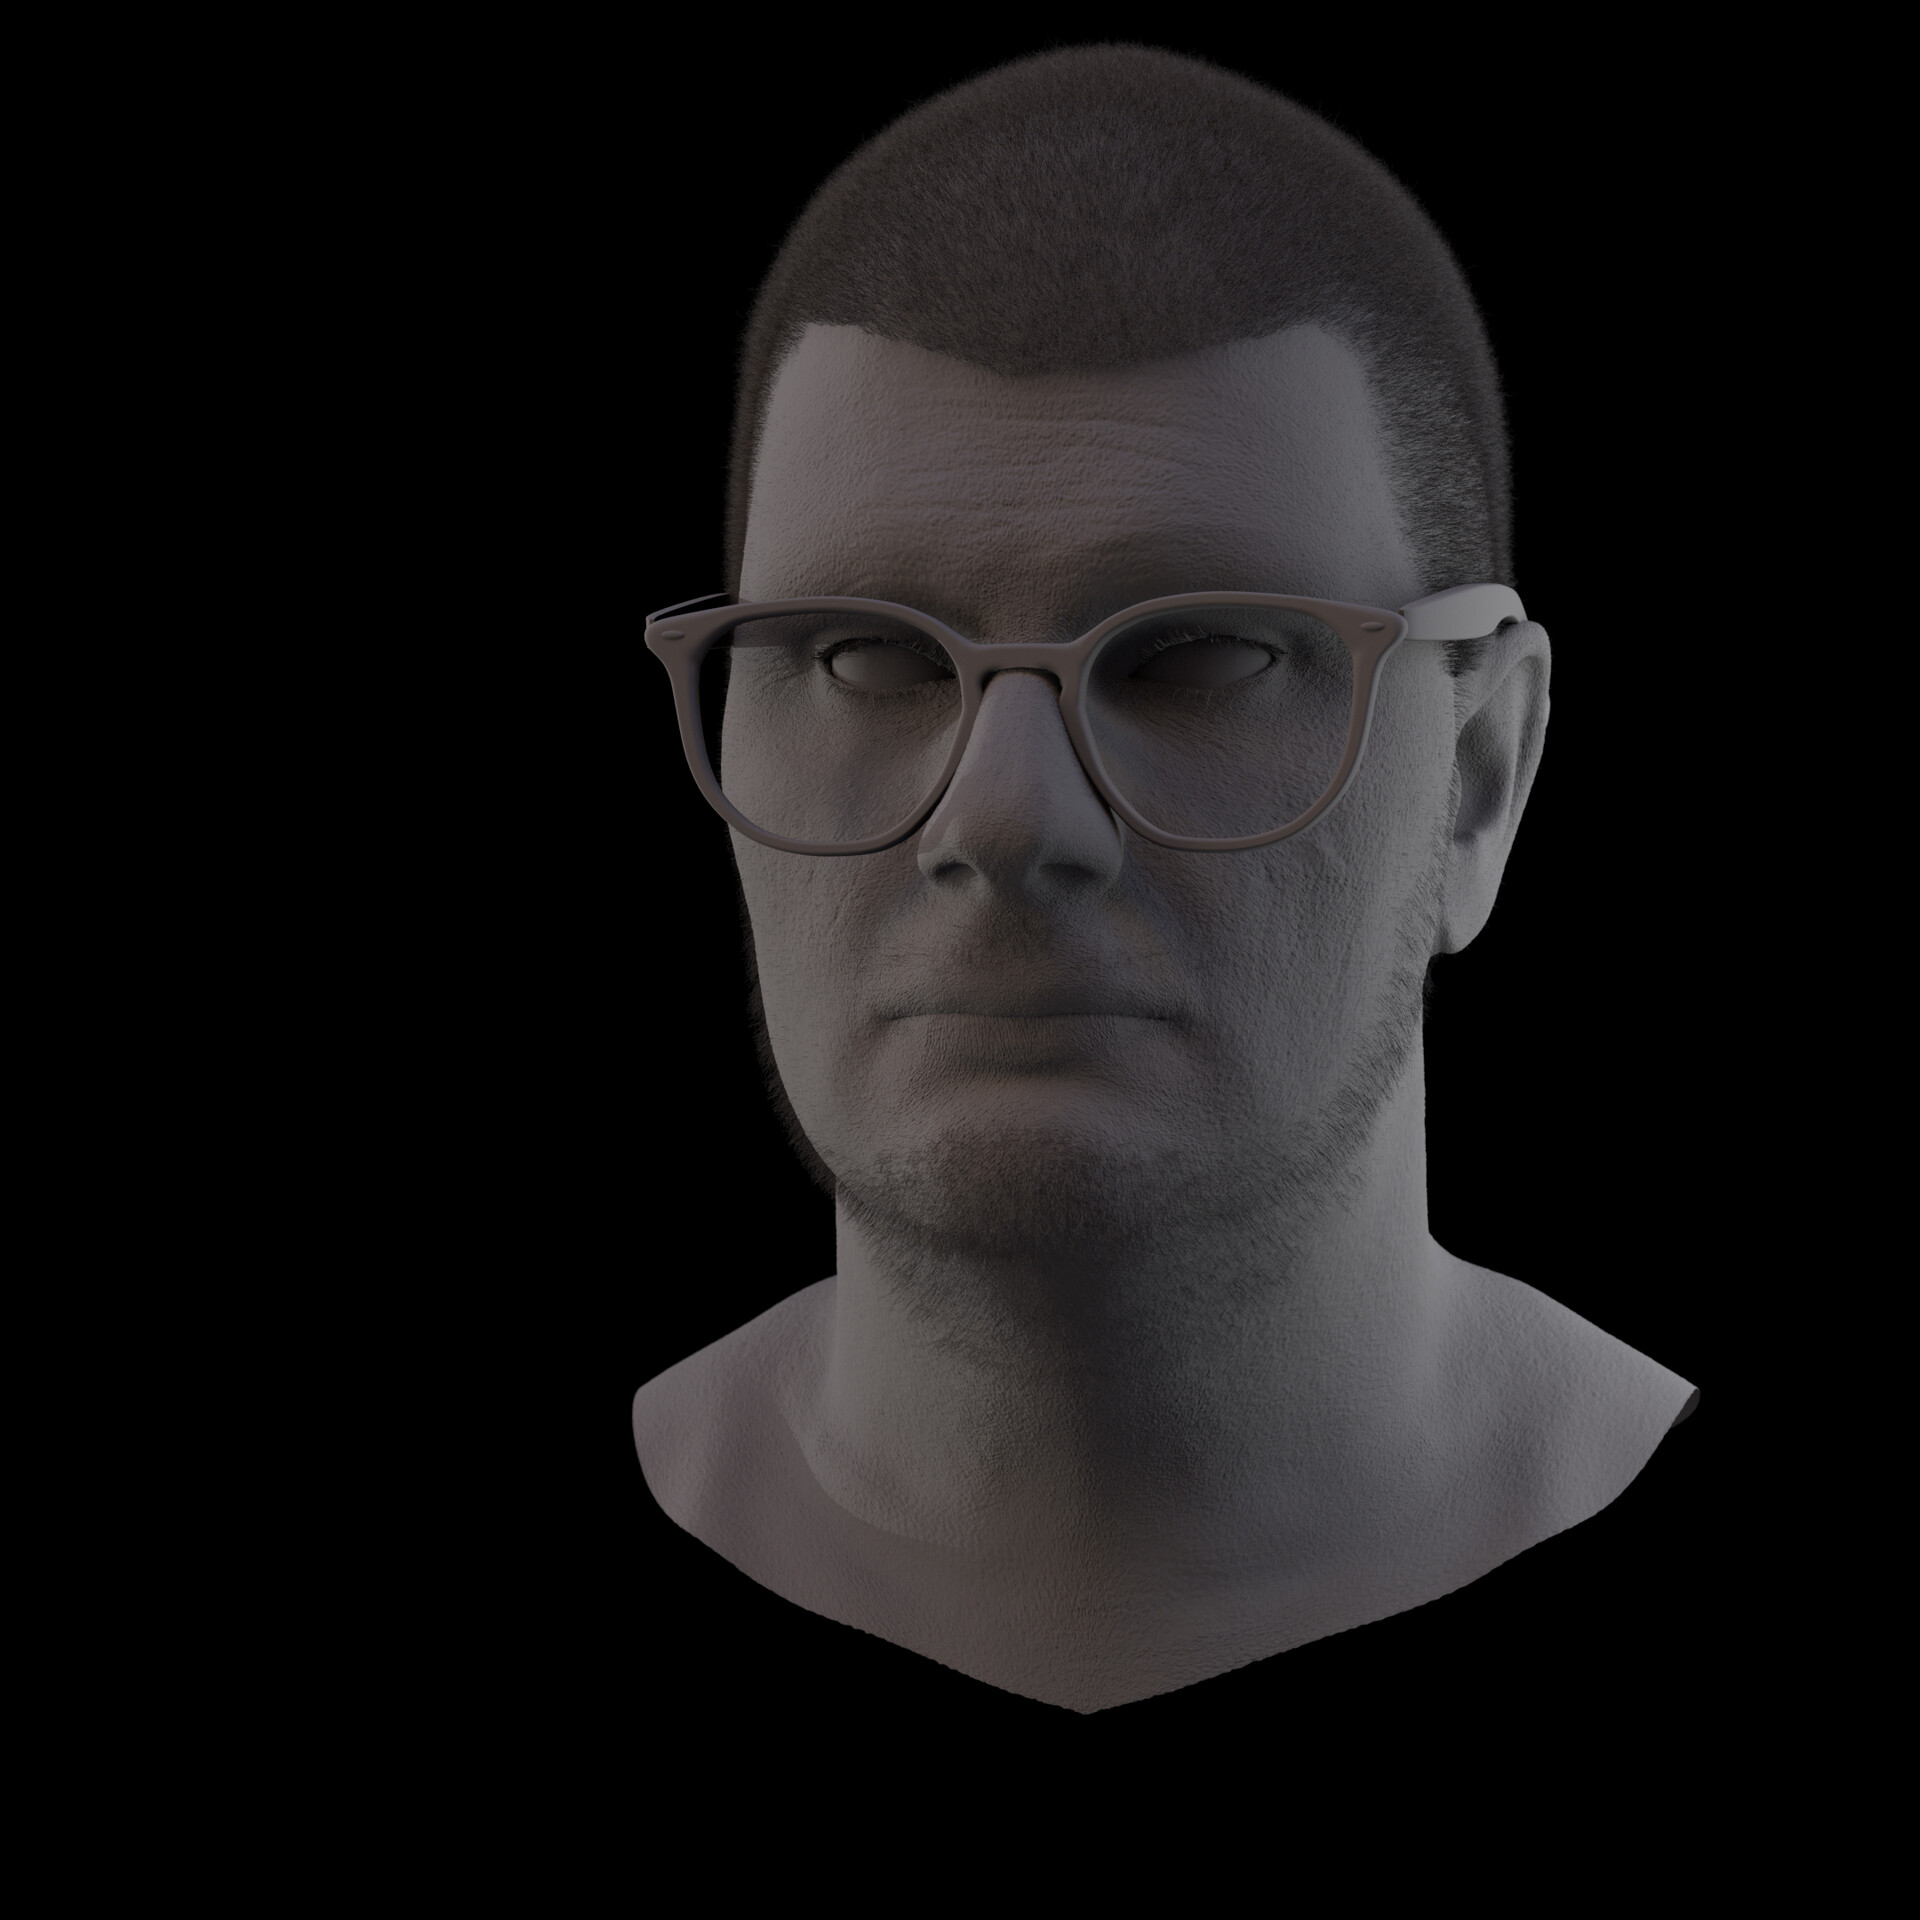 Clay render with Hair and Fur